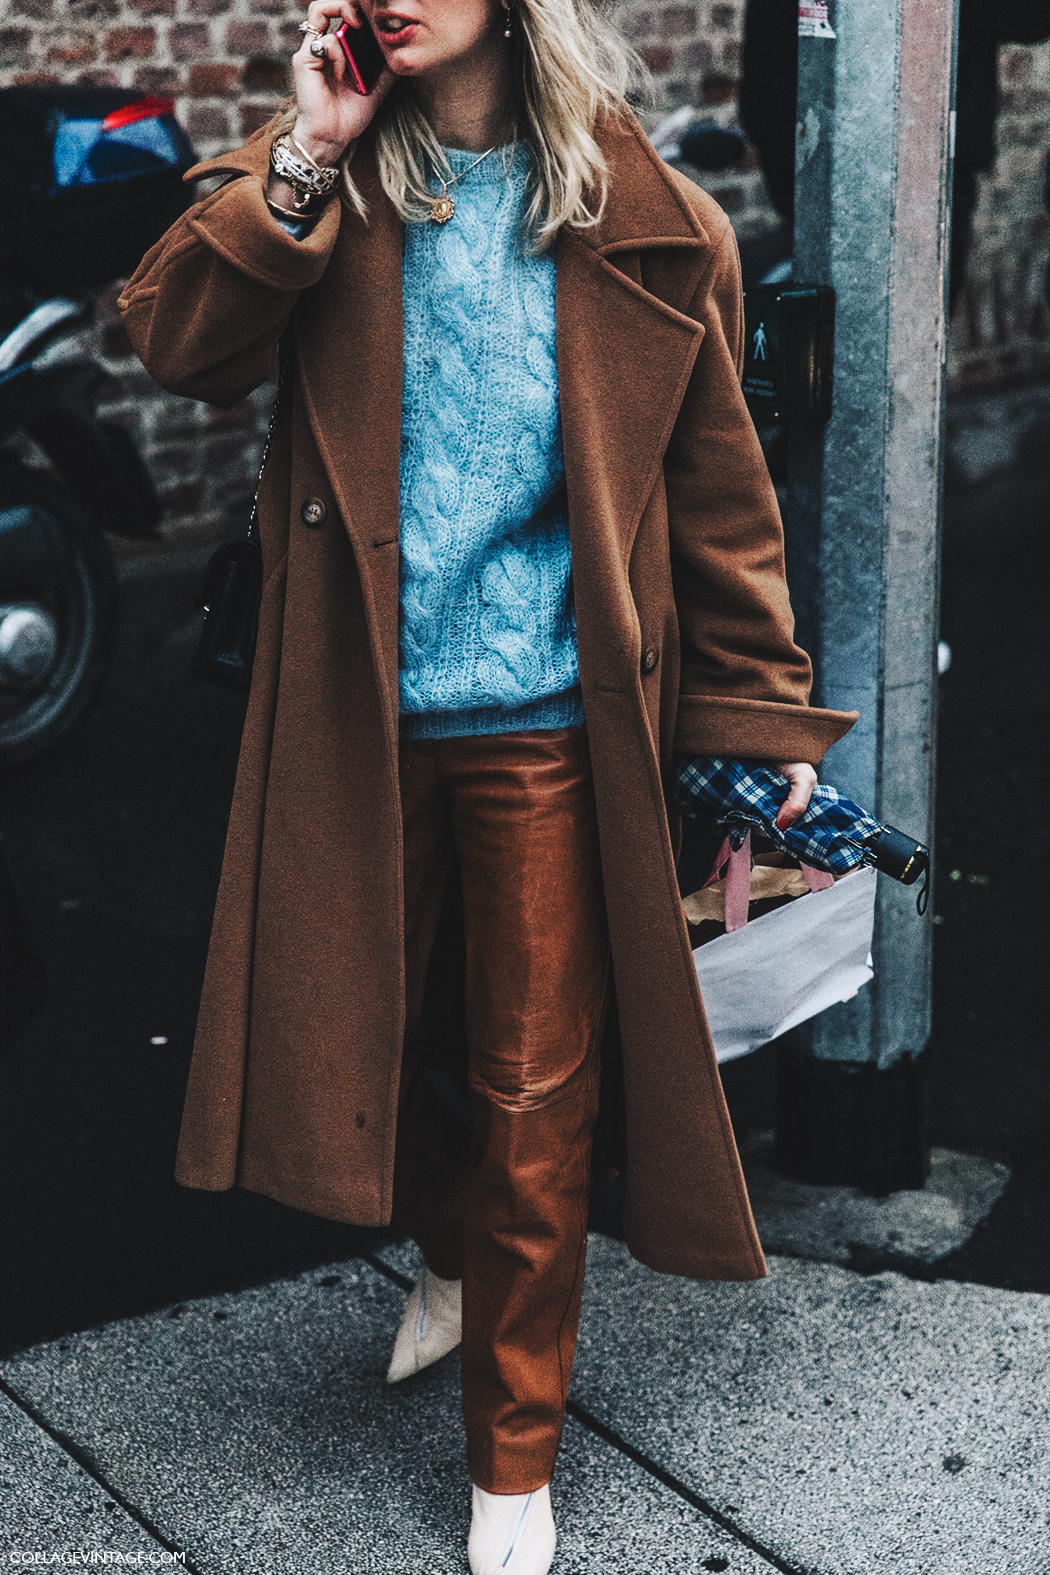 Milan_Fashion_Week_Fall_16-MFW-Street_Style-Collage_Vintage-Camel_Coat-Light_Blue-